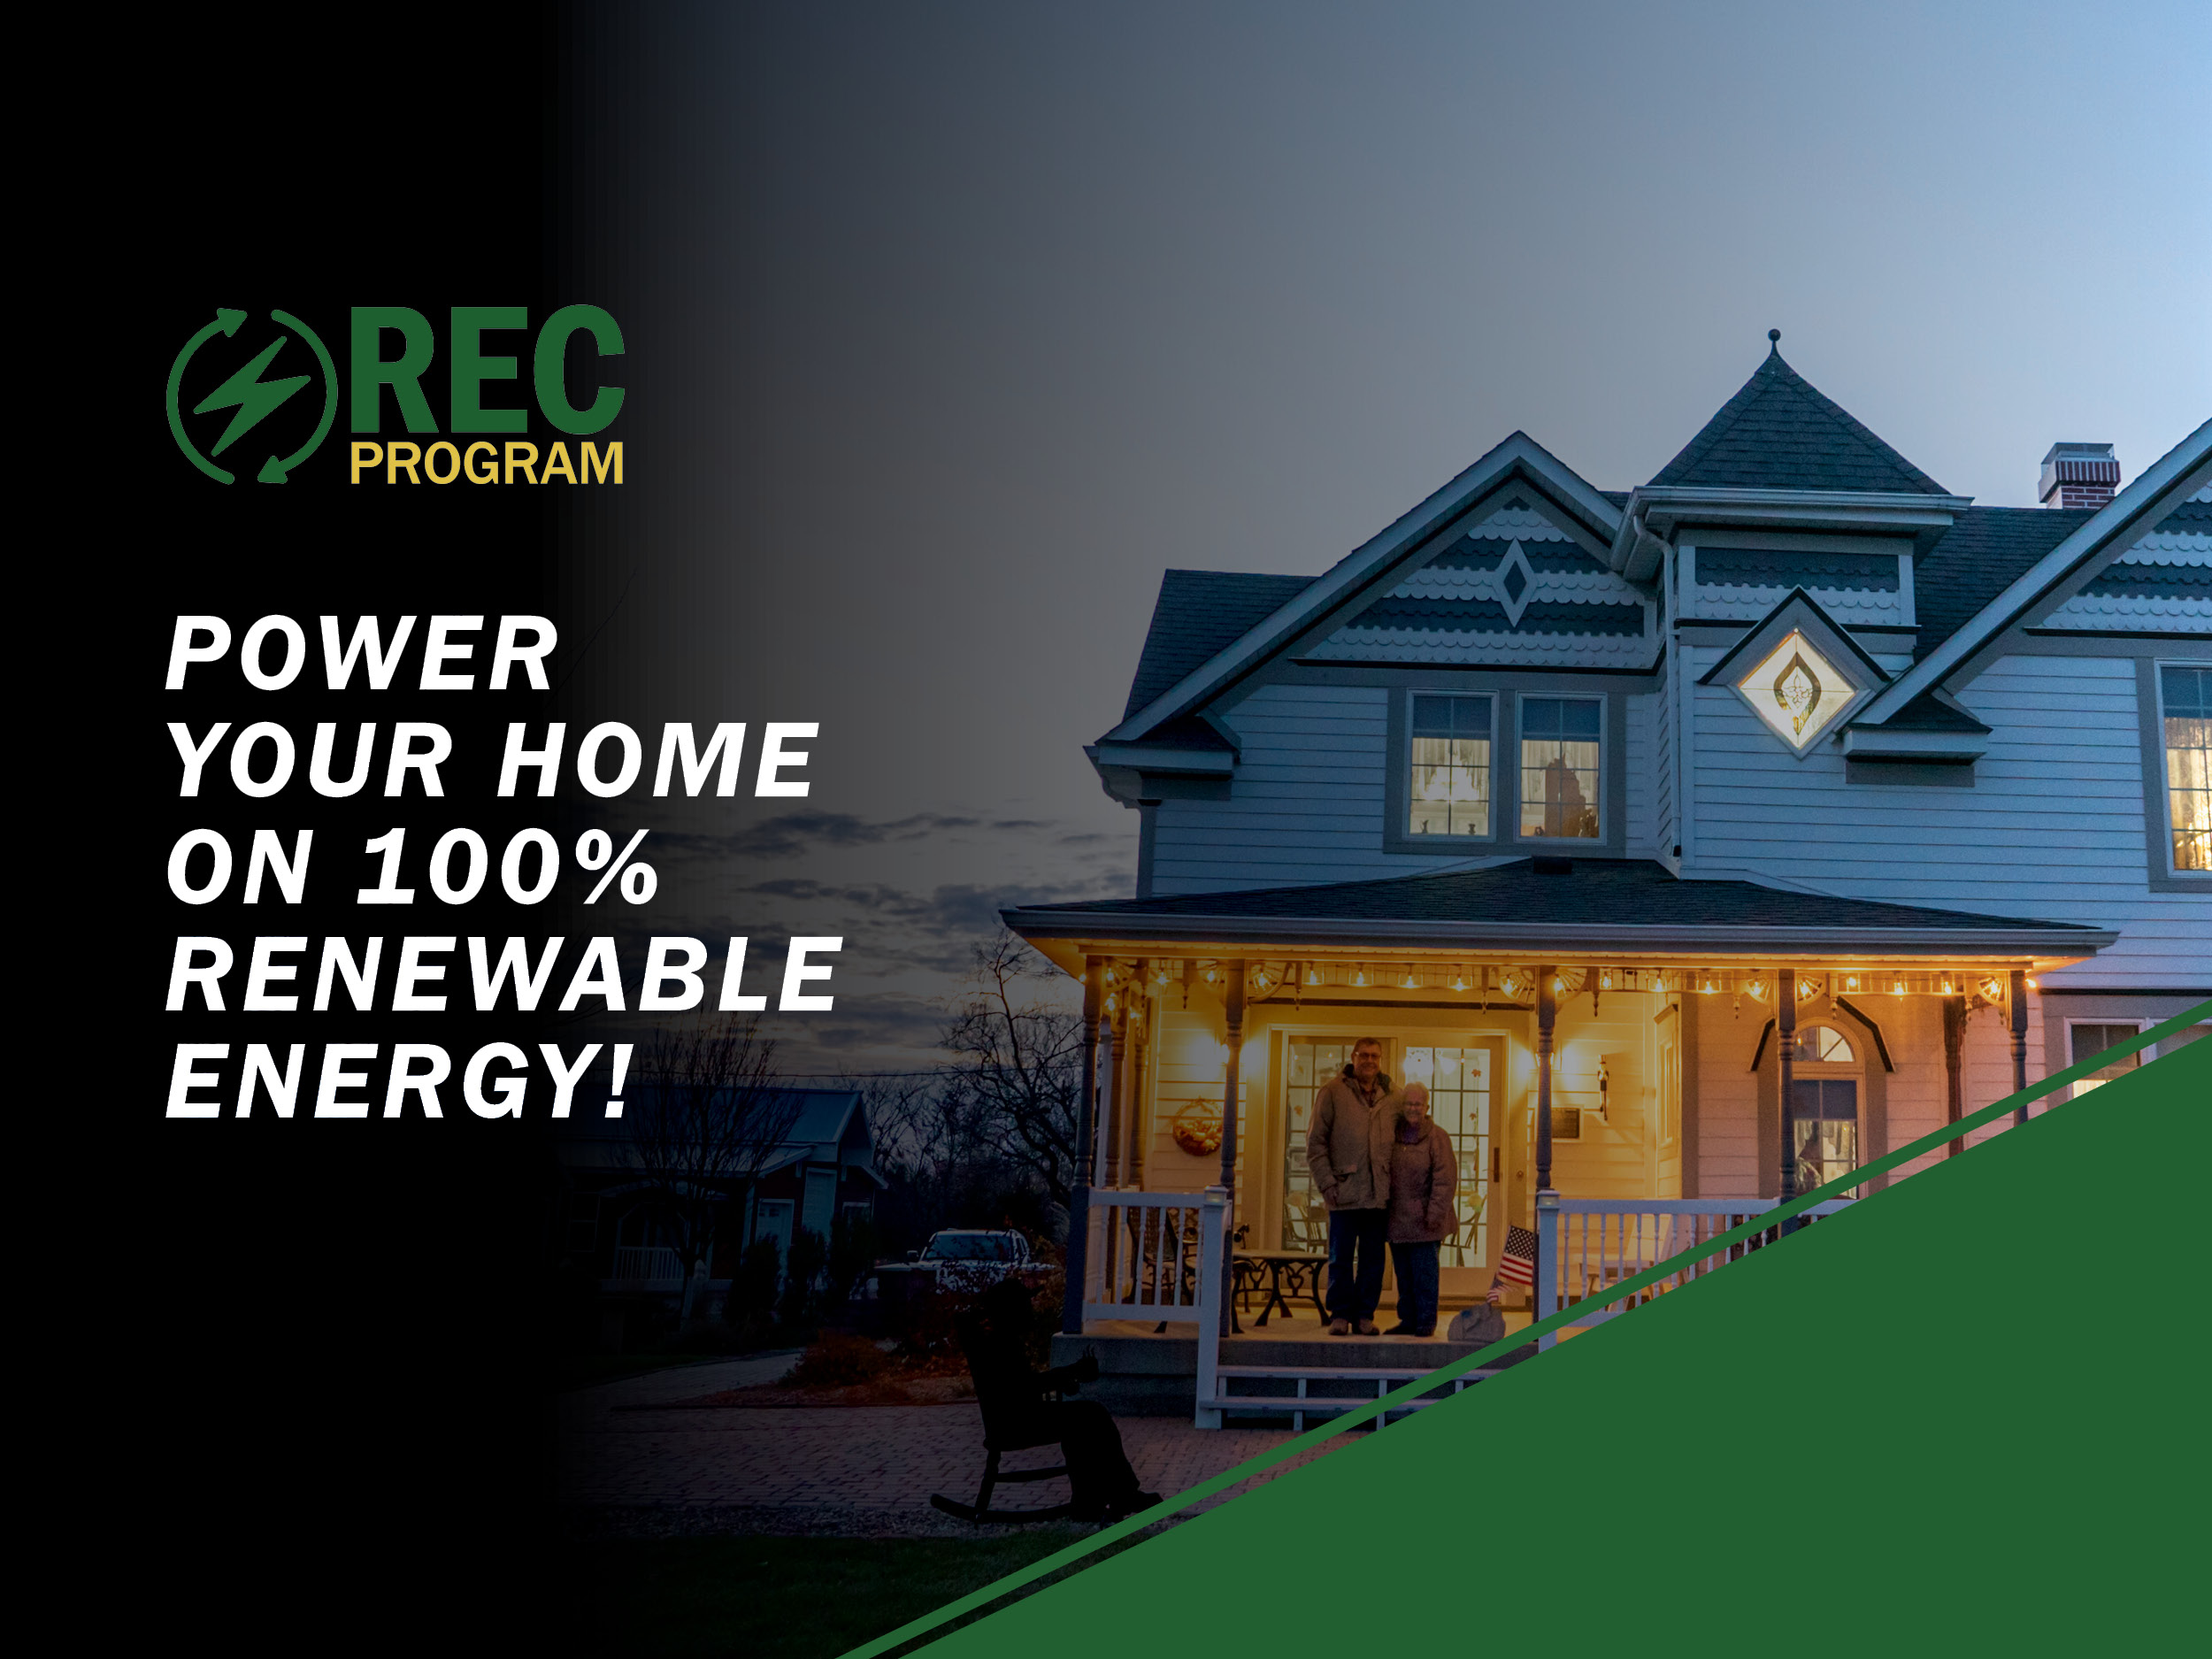 Power your Home on 100% renewable